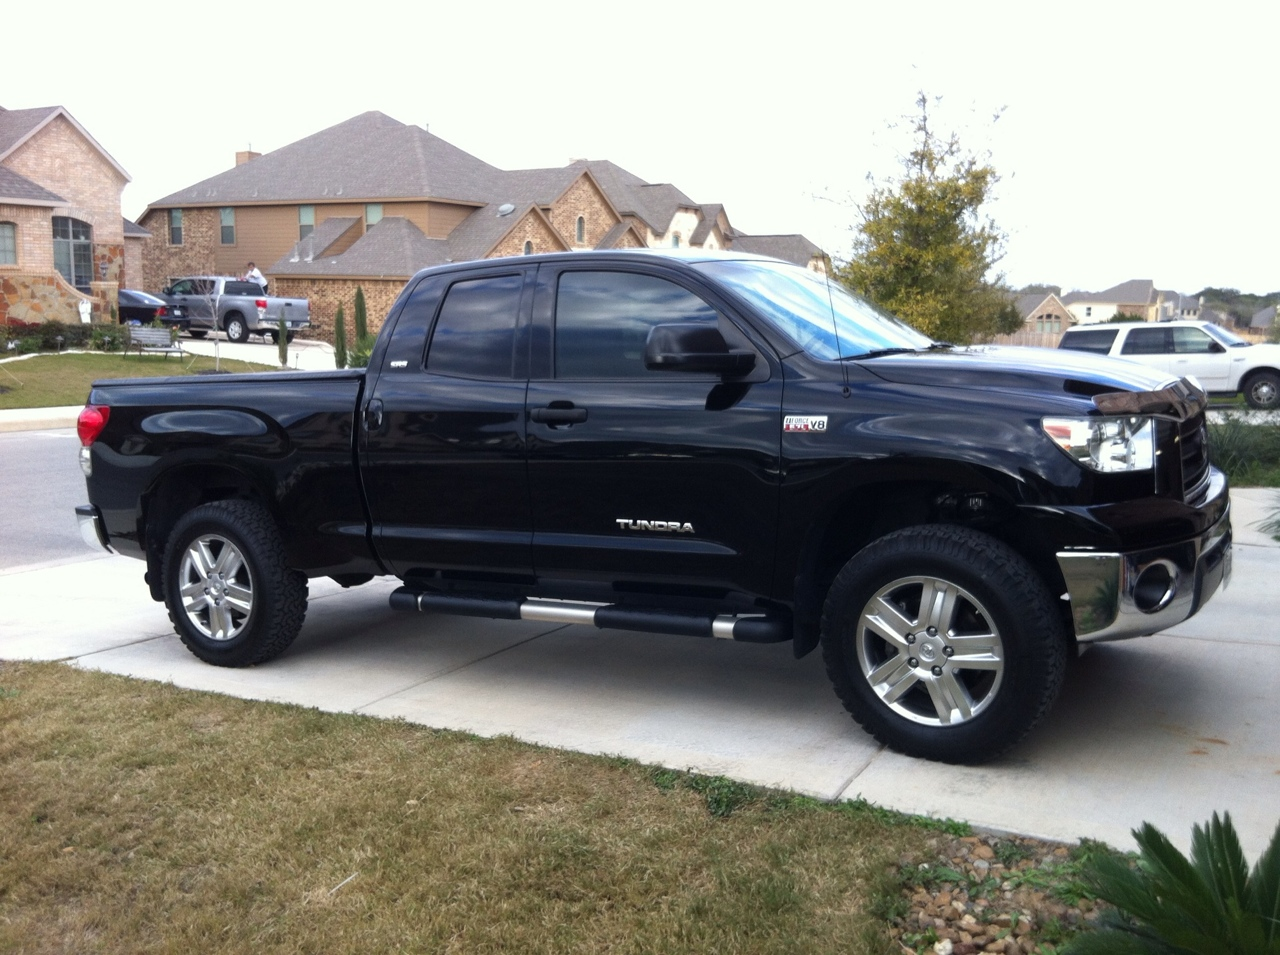 Best Size For A Proportional Look?   TundraTalk.net   Toyota Tundra  Discussion Forum